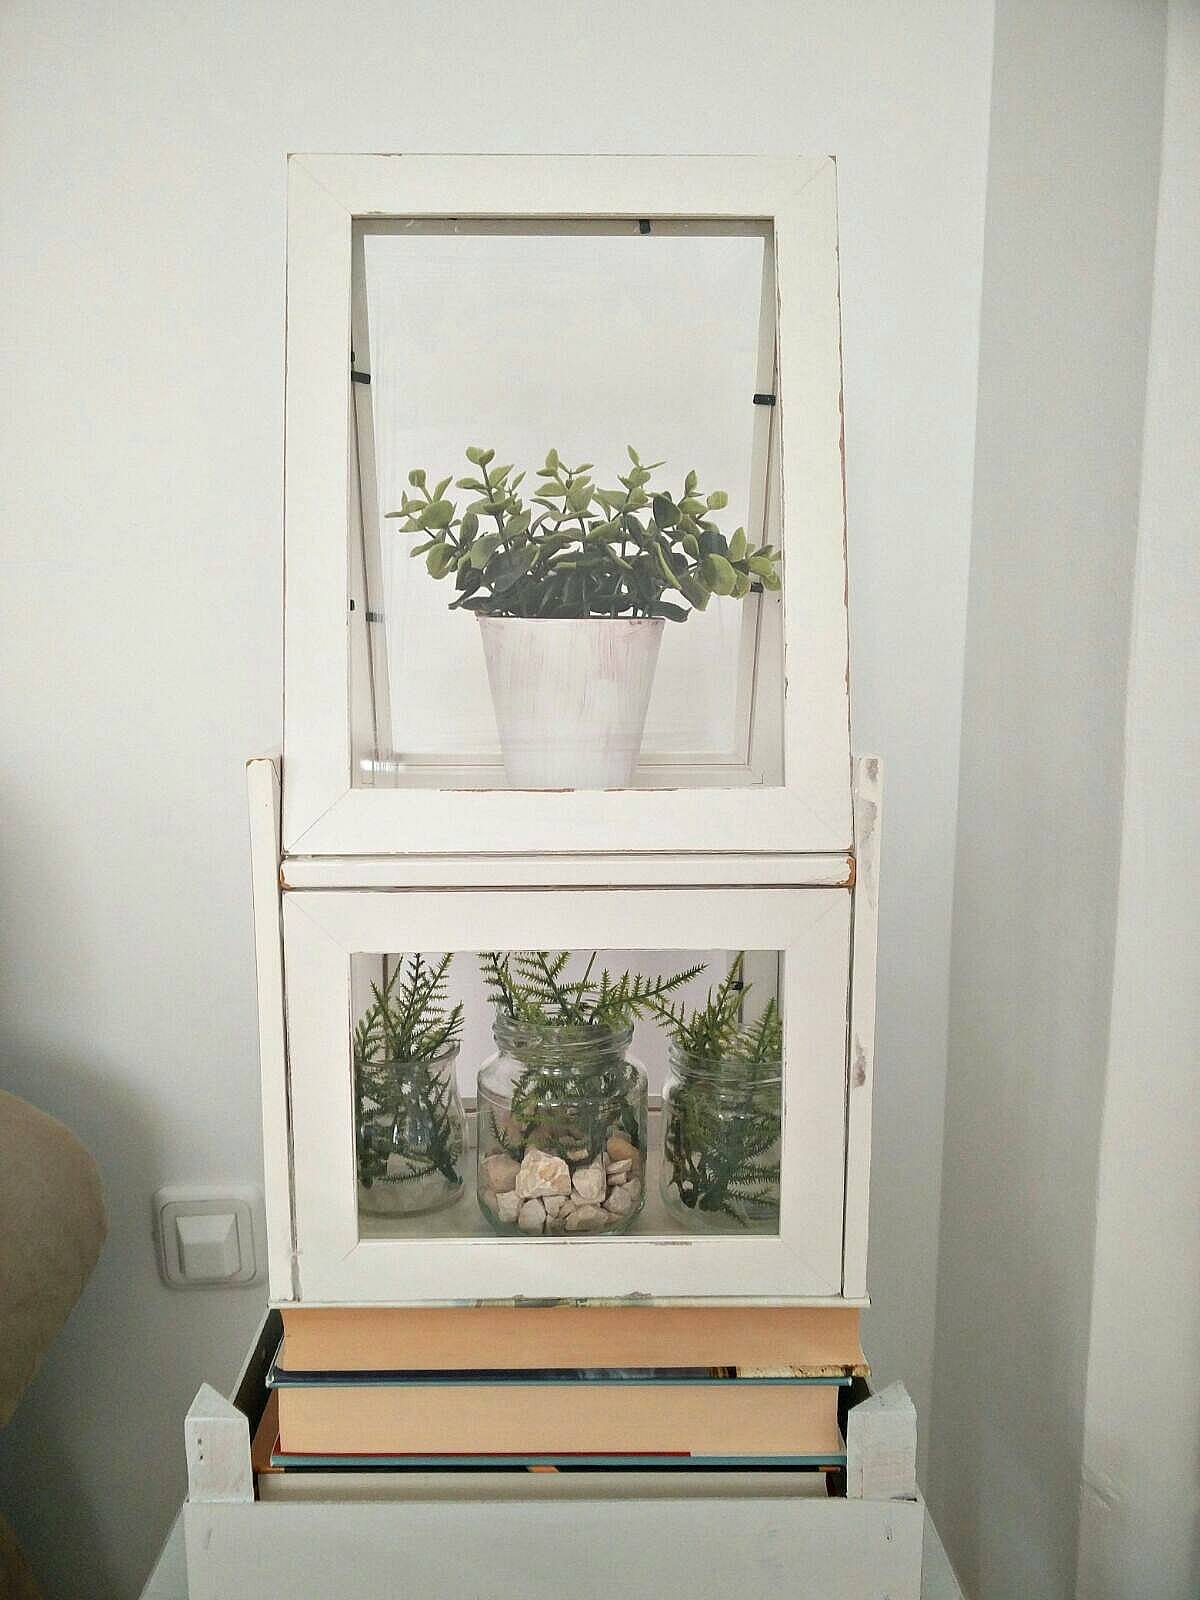 http://thecottagemarket.com/wp-content/uploads/2016/07/DIY-Terrarium-using-Ikea-frames-kreativk.net-14.jpg